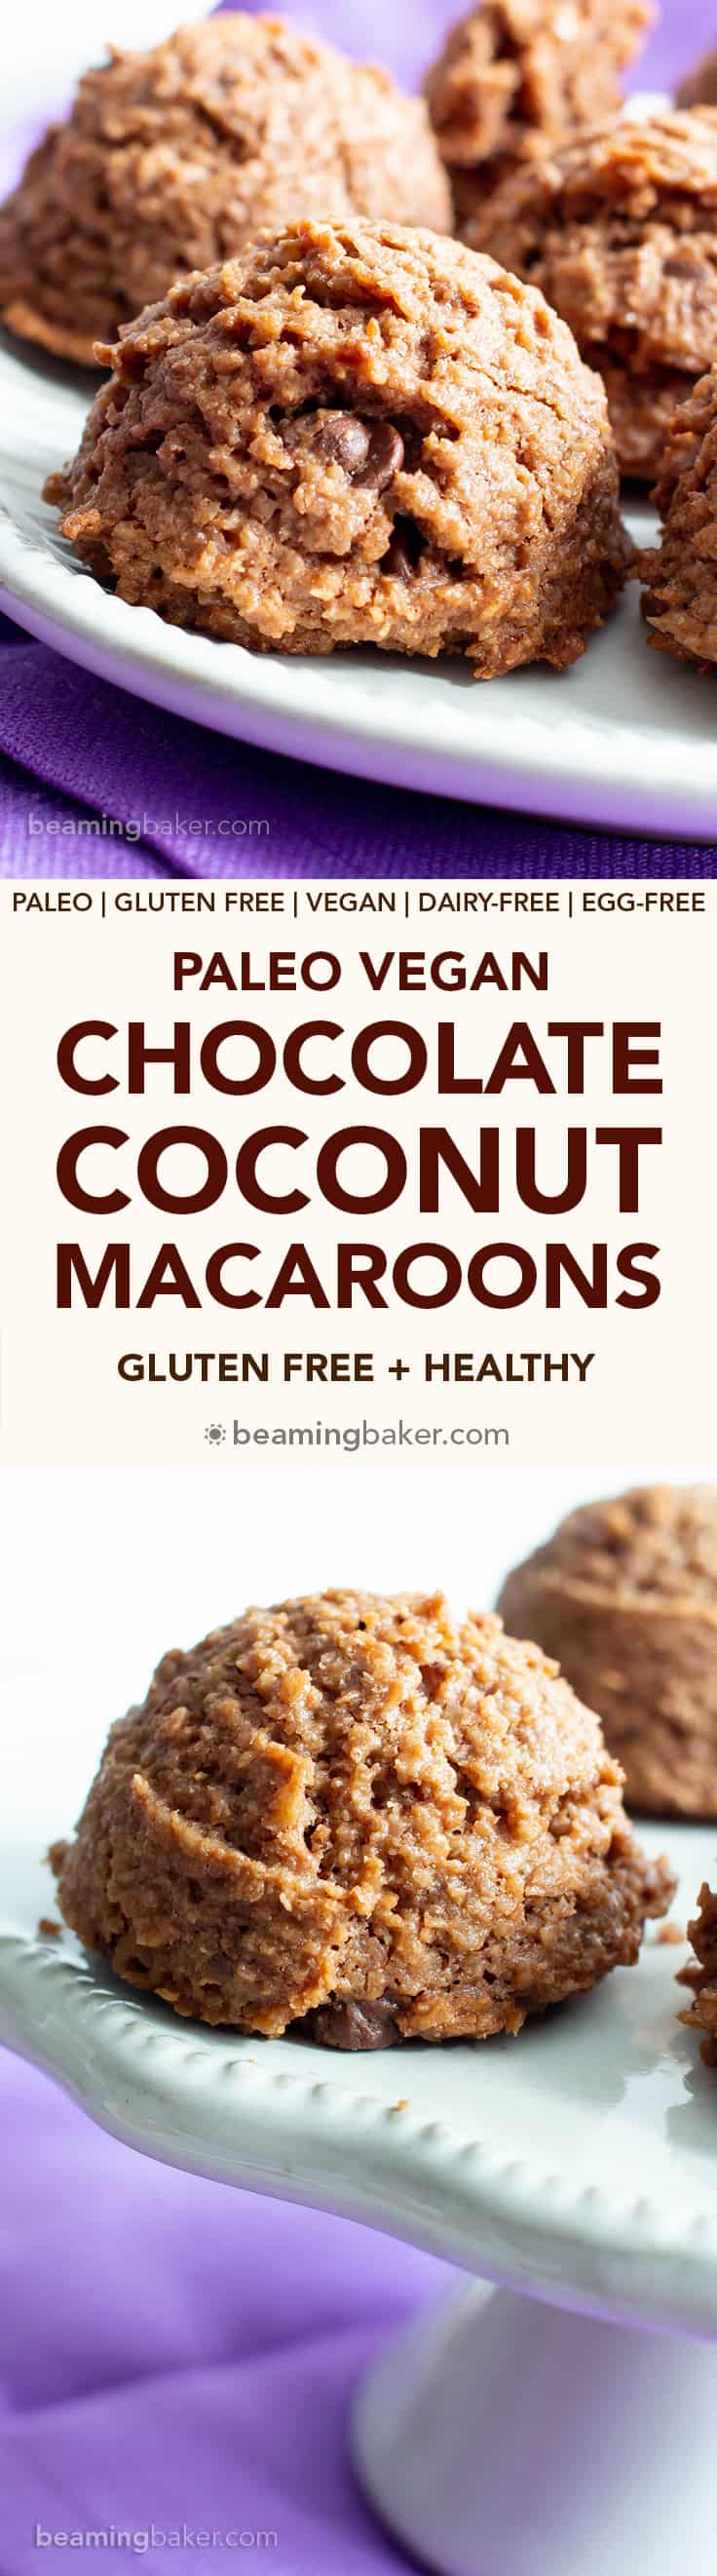 Paleo Chocolate Coconut Macaroons Recipe (V, GF): an easy recipe for deliciously chewy chocolate macaroon cookies bursting with 2x the amount of chocolate! Made with healthy, whole ingredients. #Paleo #Vegan #GlutenFree #Coconut #Macaroons #PaleoDesserts #CleanEating | Recipe at BeamingBaker.com